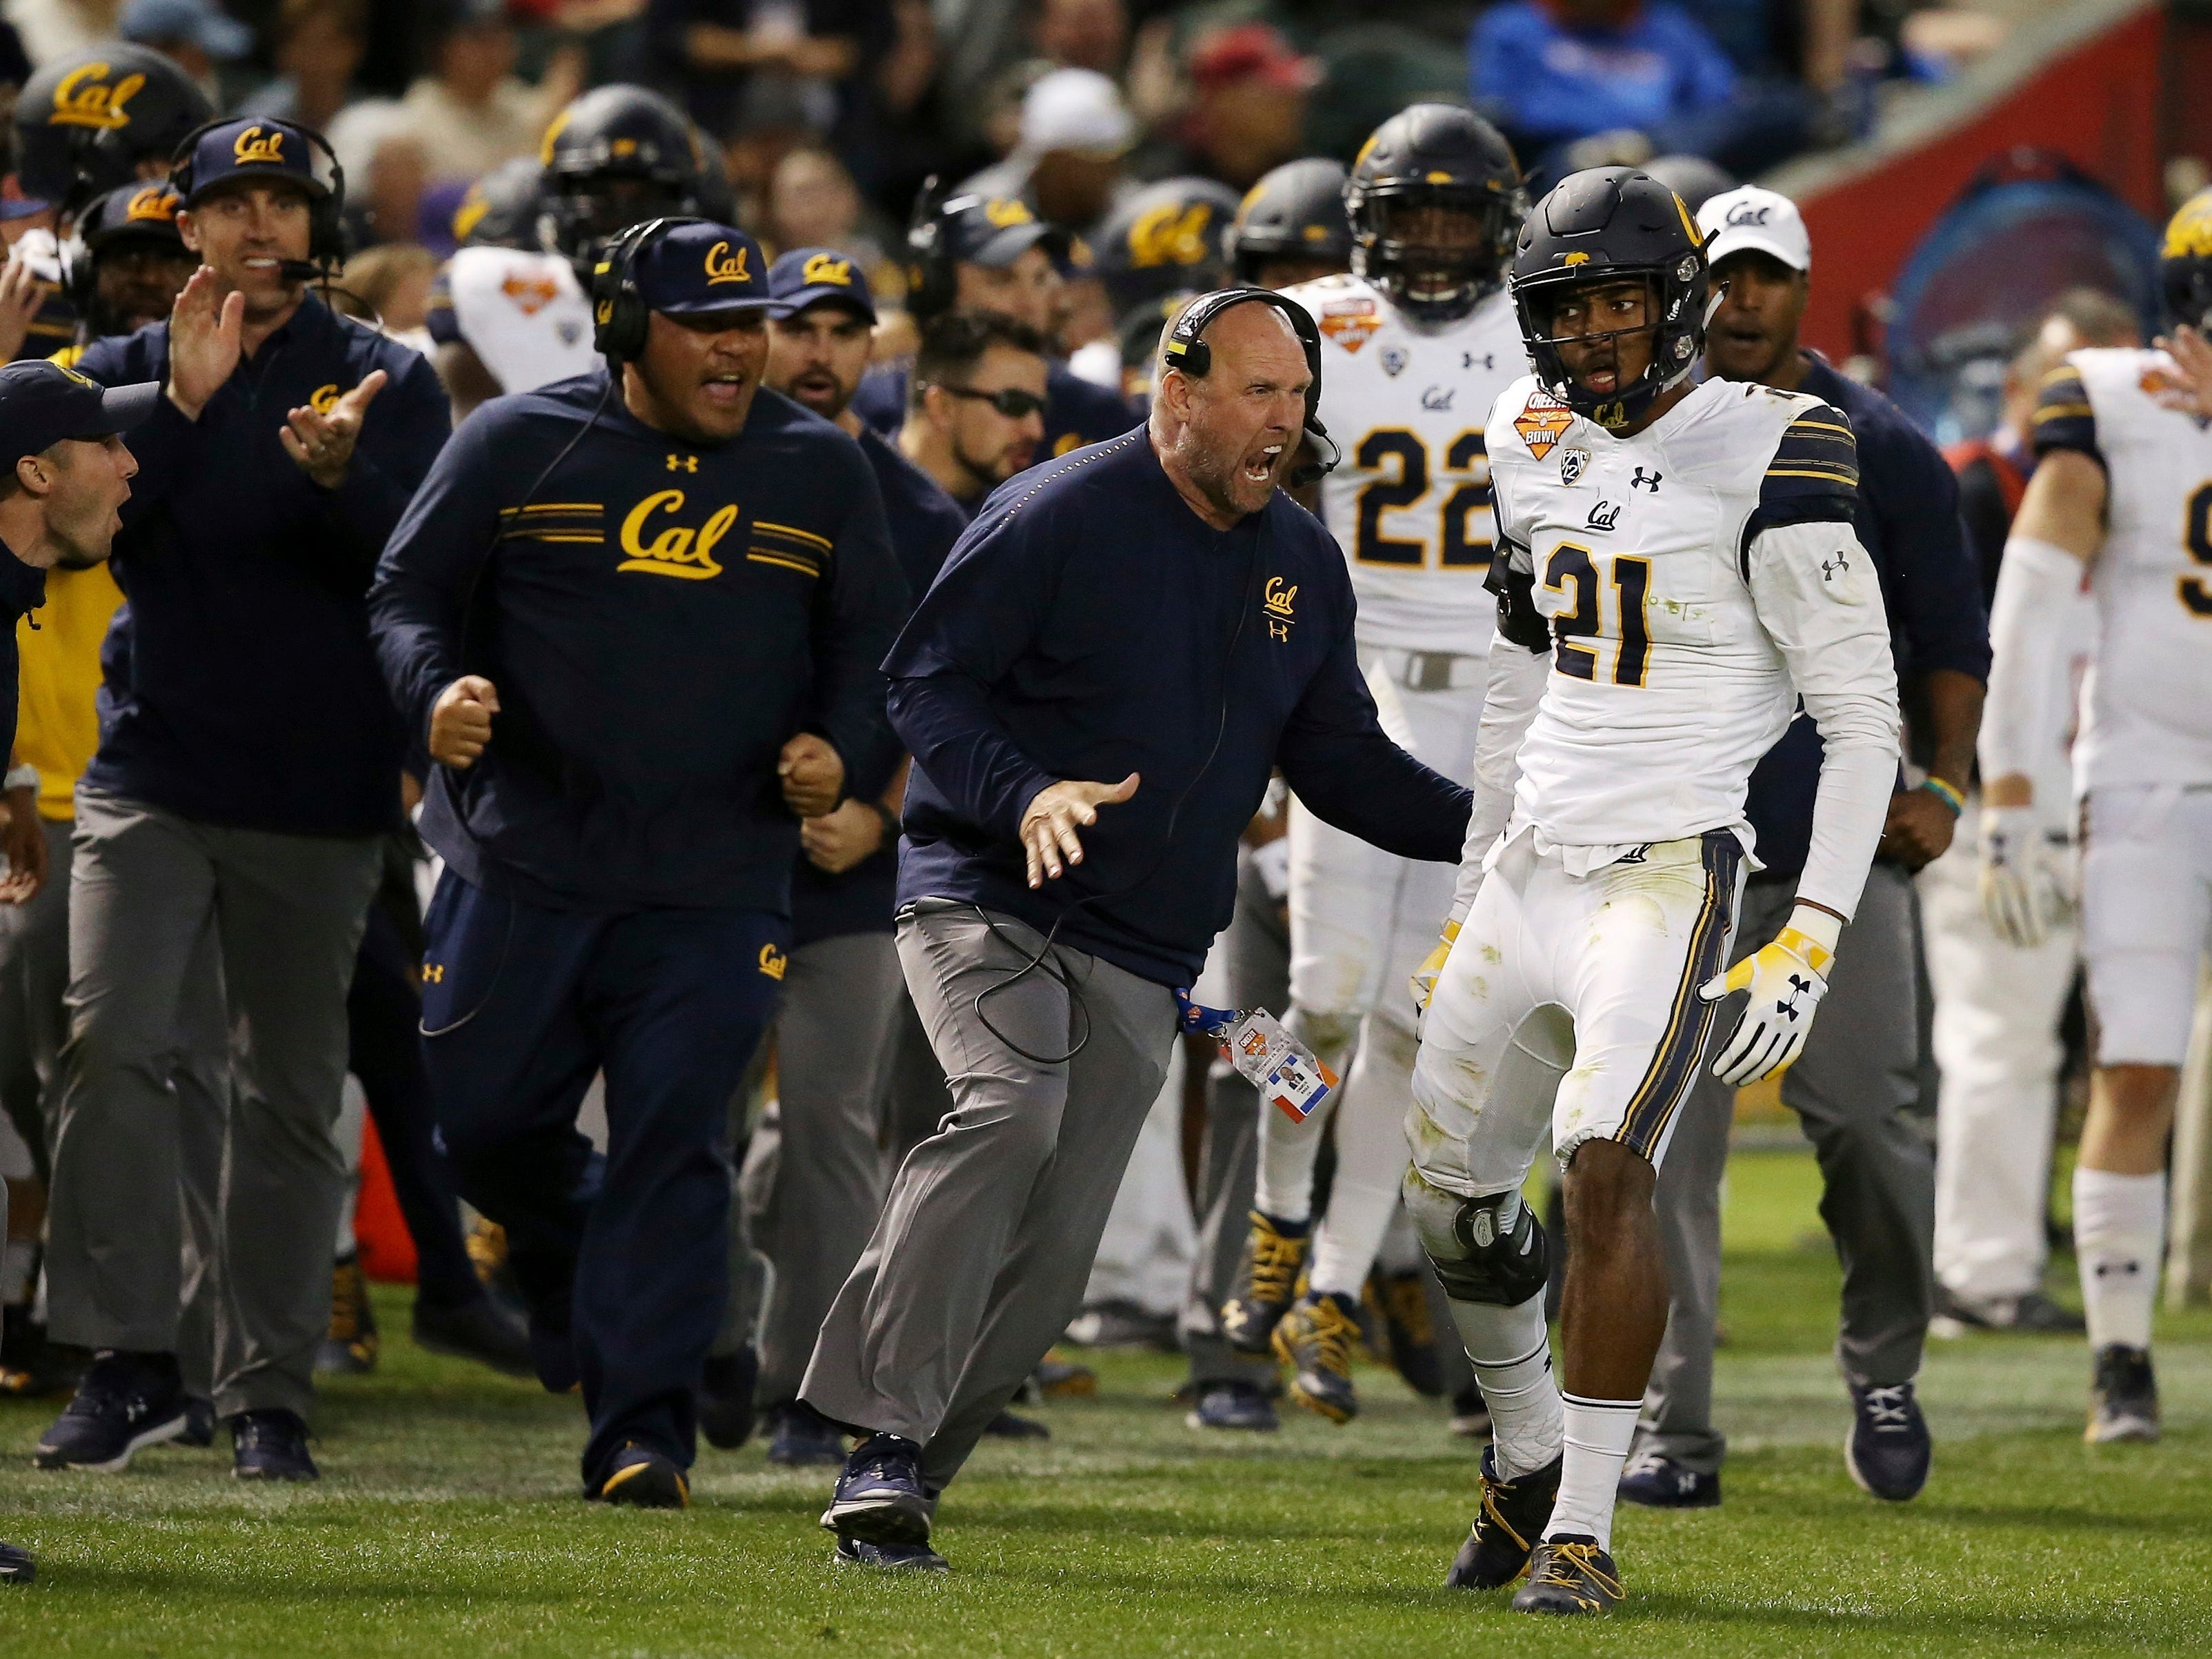 California safety Evan Rambo (21) celebrates his tackle for a loss against TCU with some of the coaches during the first half of the Cheez-It Bowl NCAA college football game Wednesday, Dec. 26, 2018, in Phoenix.